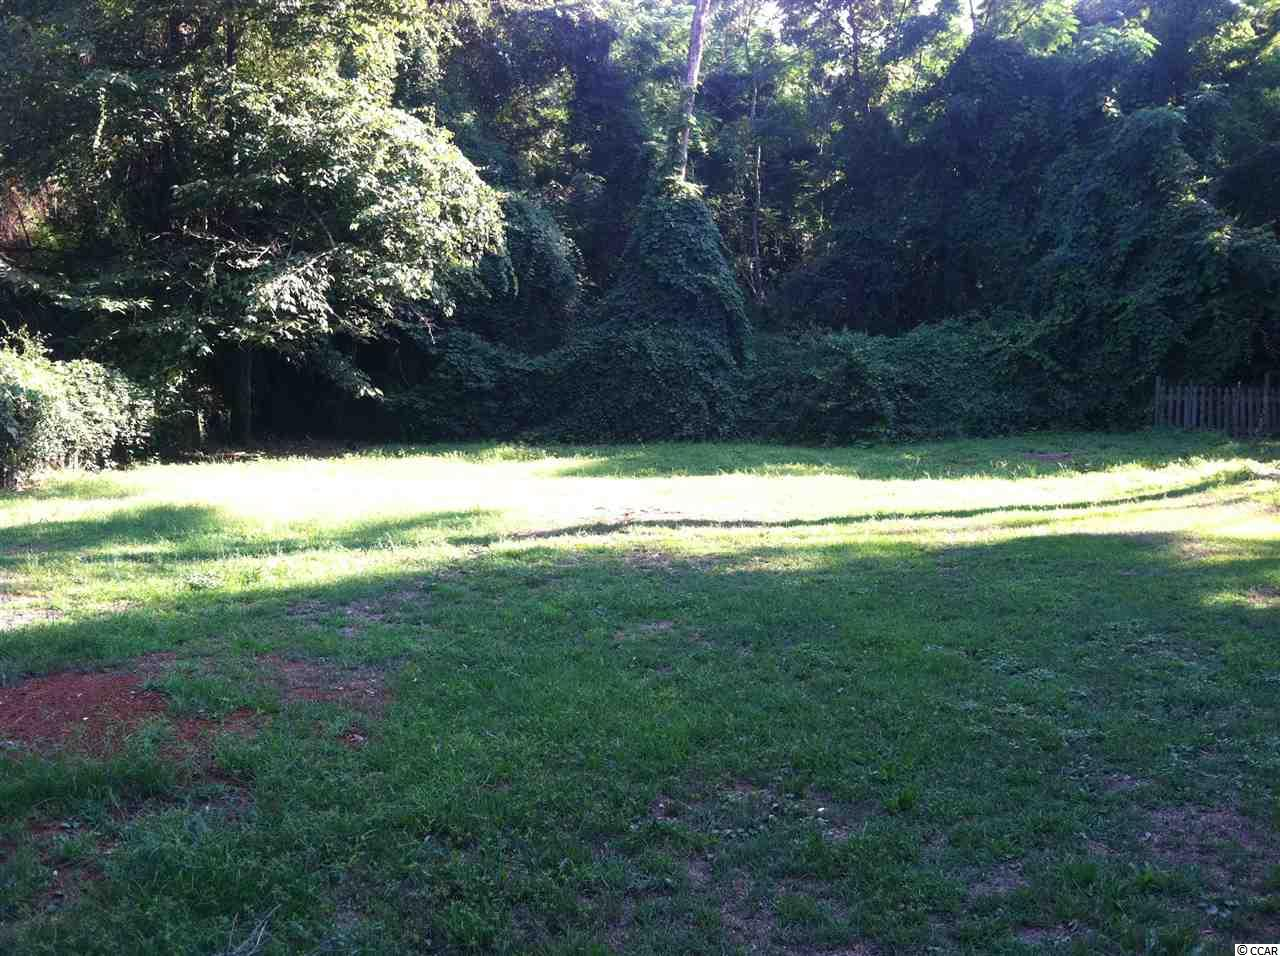 Cleared lot and ready to build on lot east of 17 in Litchfield. Approximately 1/3 of an acre measuring 64 x 130 x 64x130 with access to public water and sewer. Quiet and serene location.